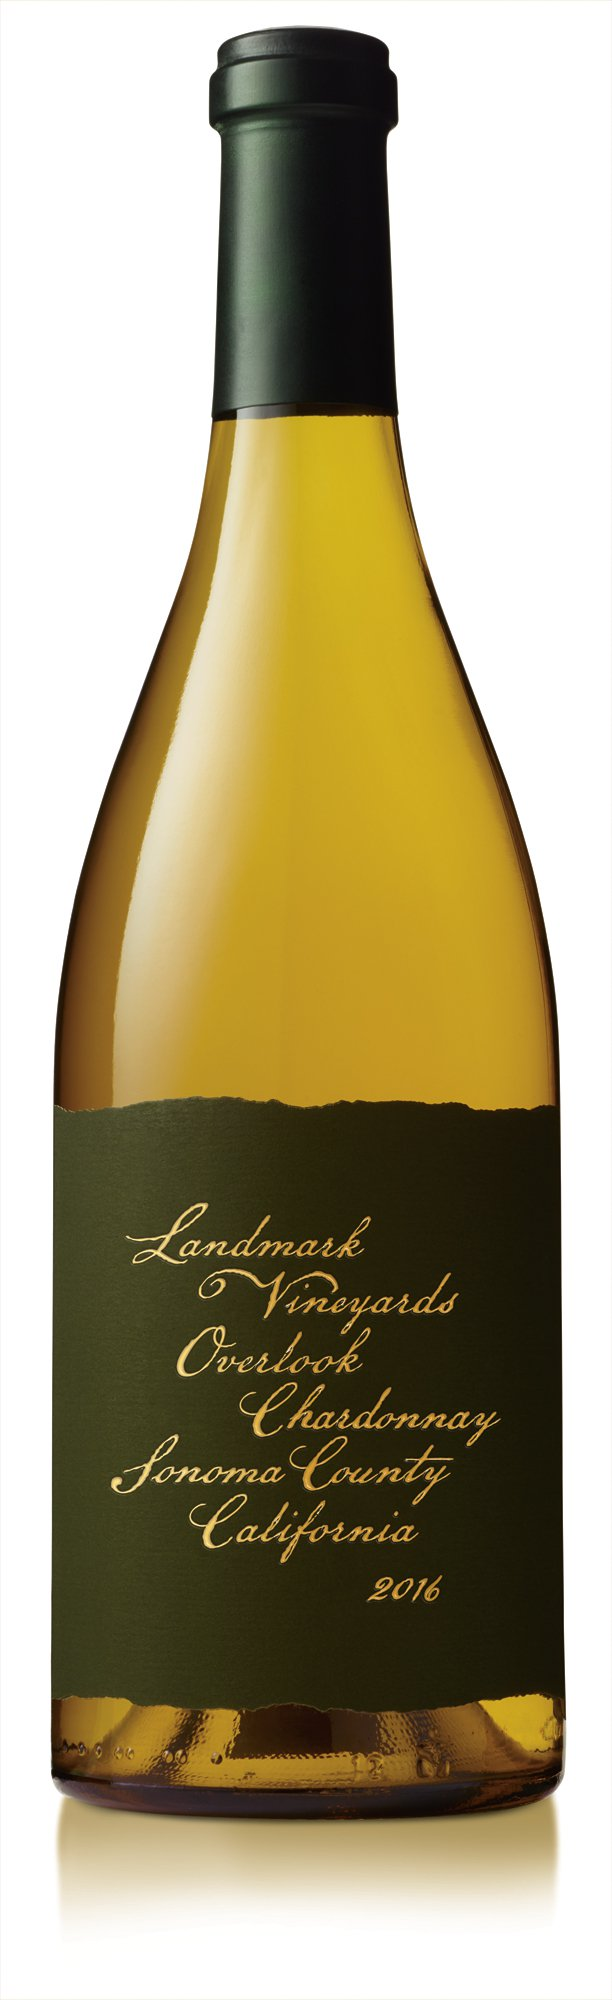 Landmark_2016_750ml_Overlook_Chard_Sonoma_rgb.jpg